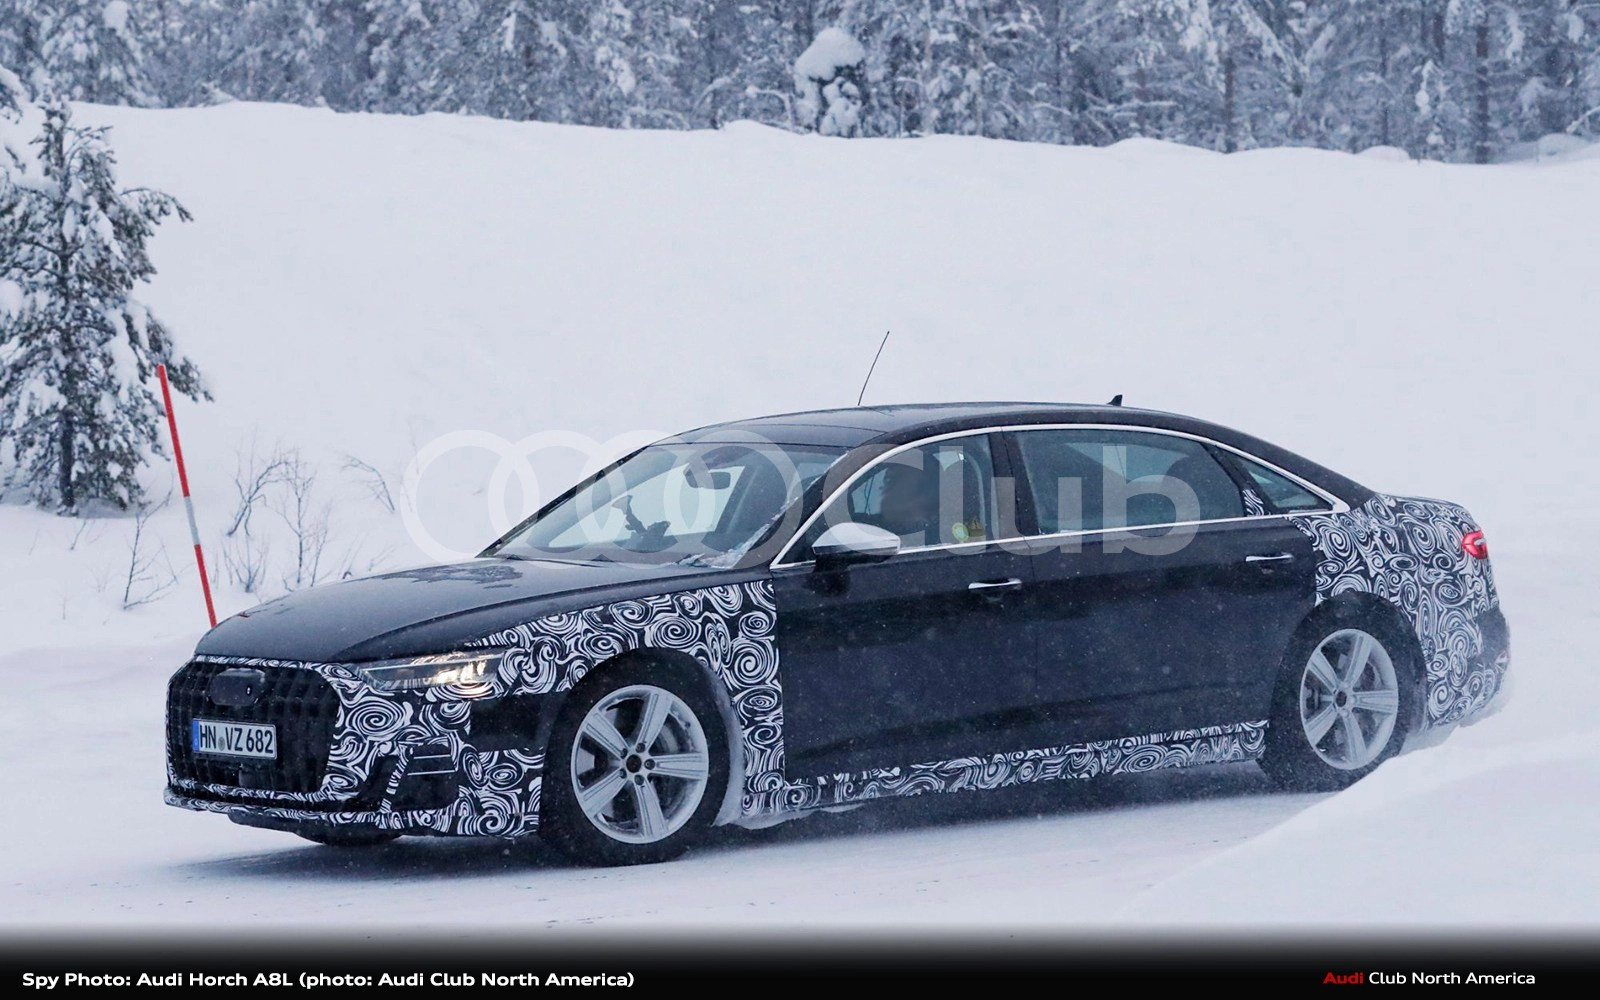 Spy Photo: Audi Horch A8L